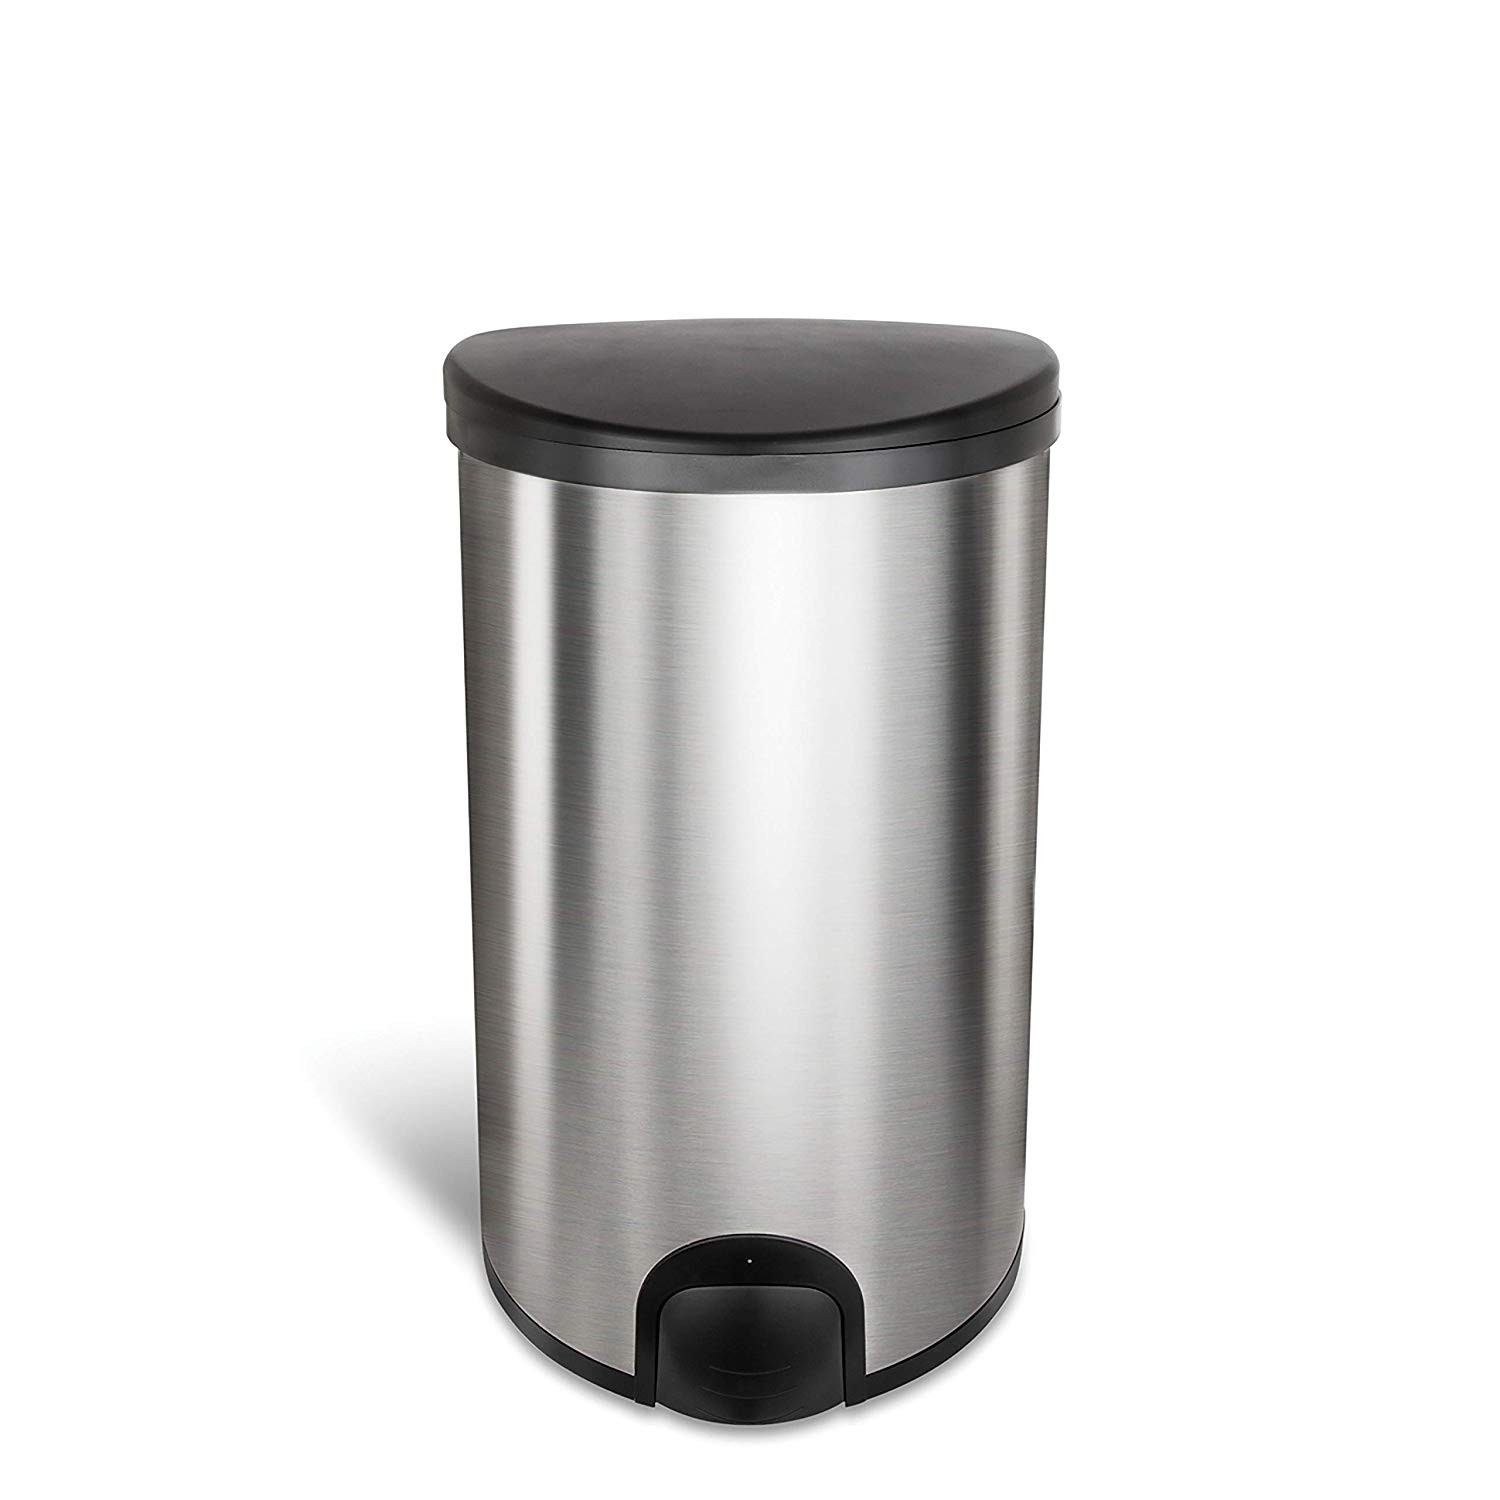 50L Toe tap hands-touch or pedal free, Kitchen pedal less automatic rubbish bins with self-opening lids